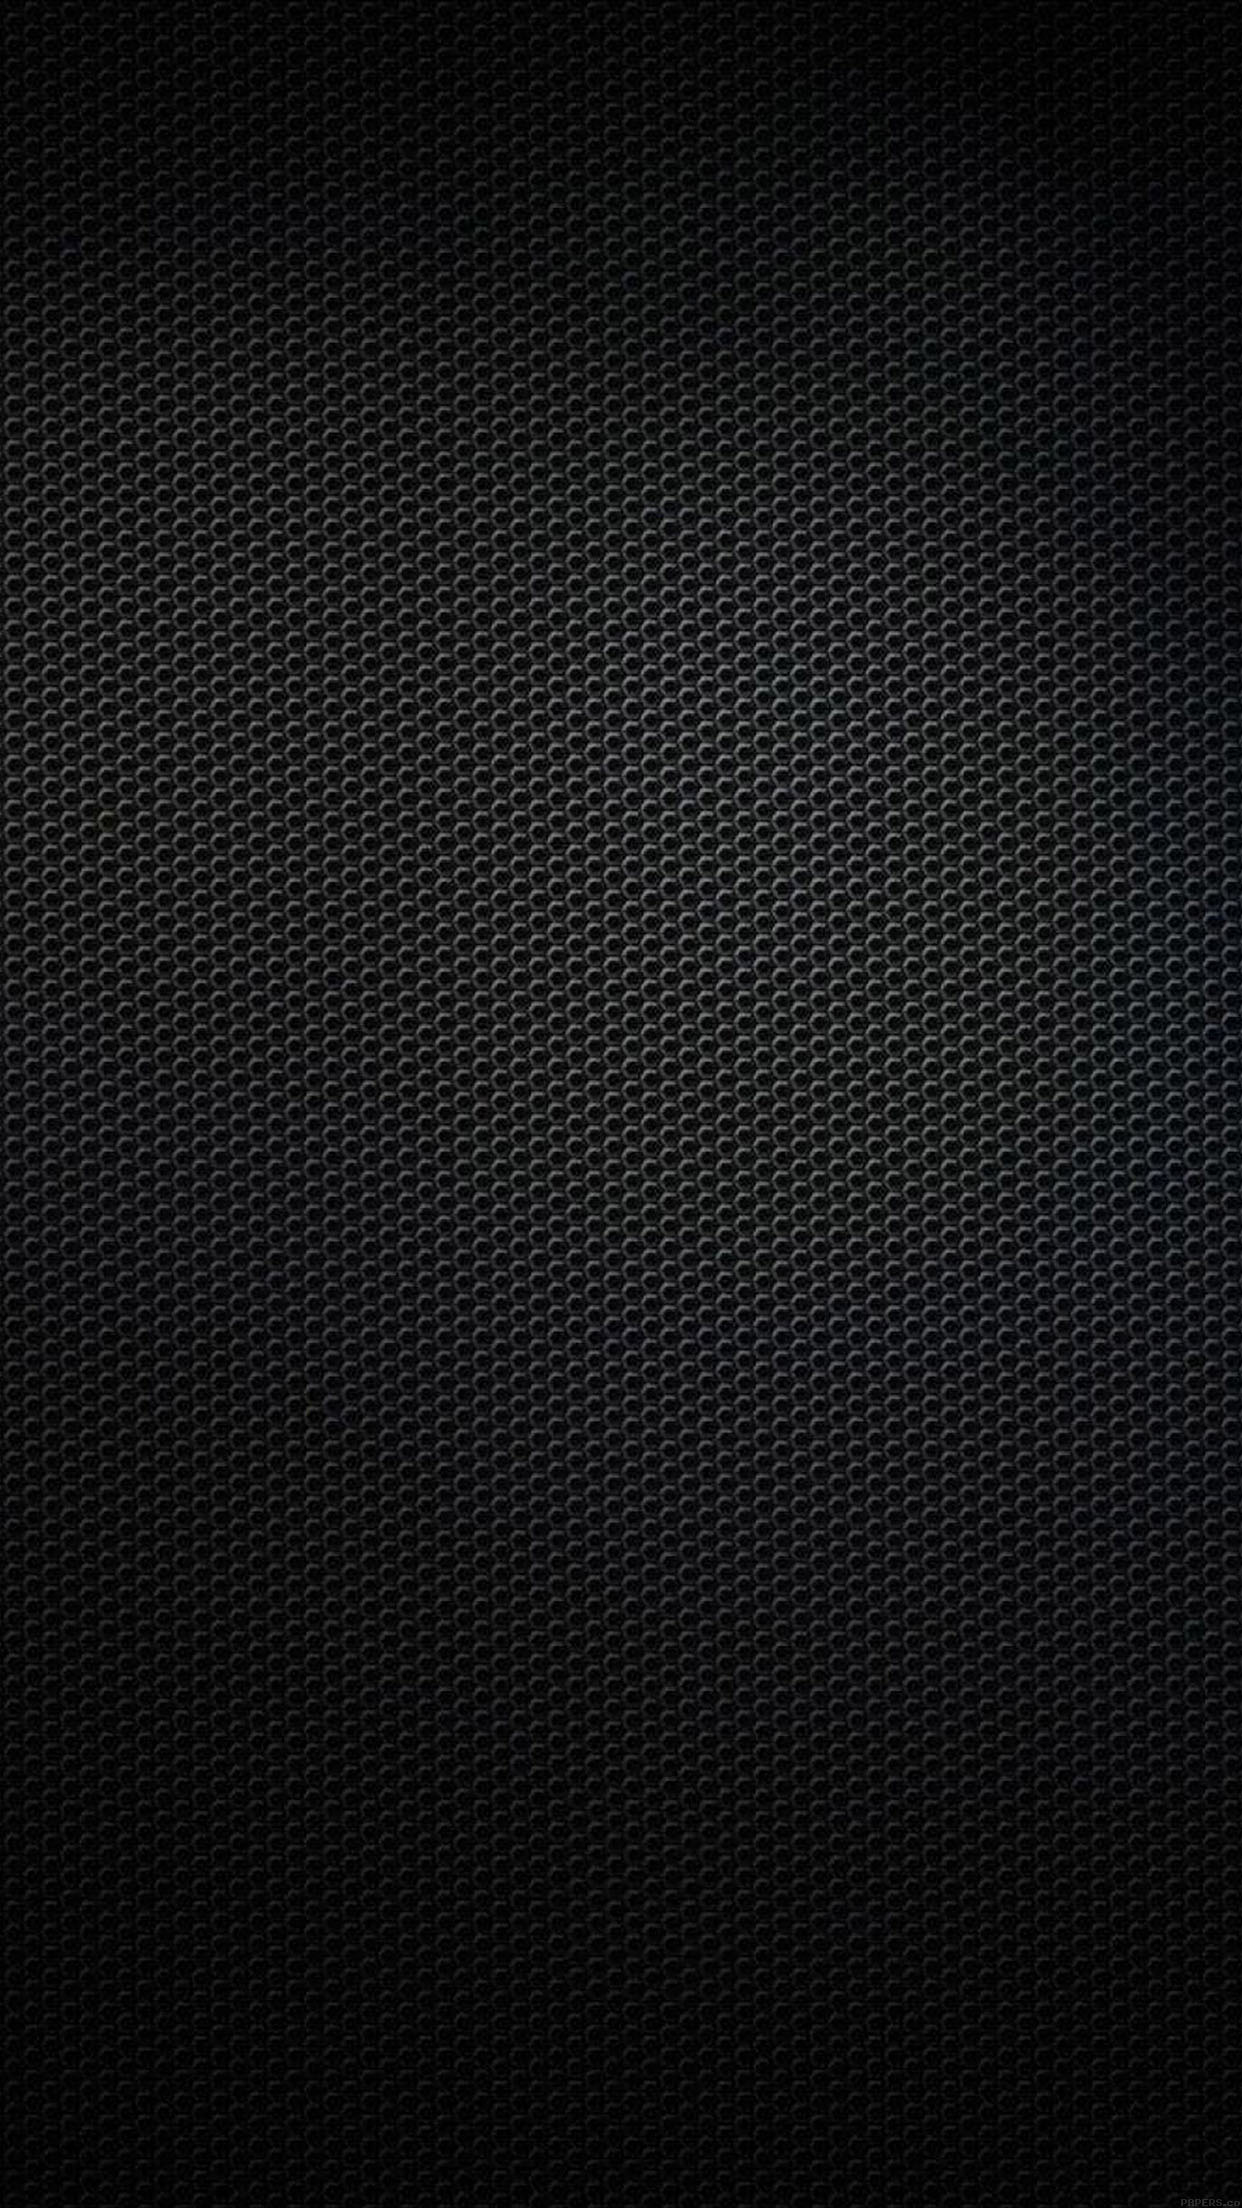 Black Iphone Wallpapers Top Free Black Iphone Backgrounds Wallpaperaccess